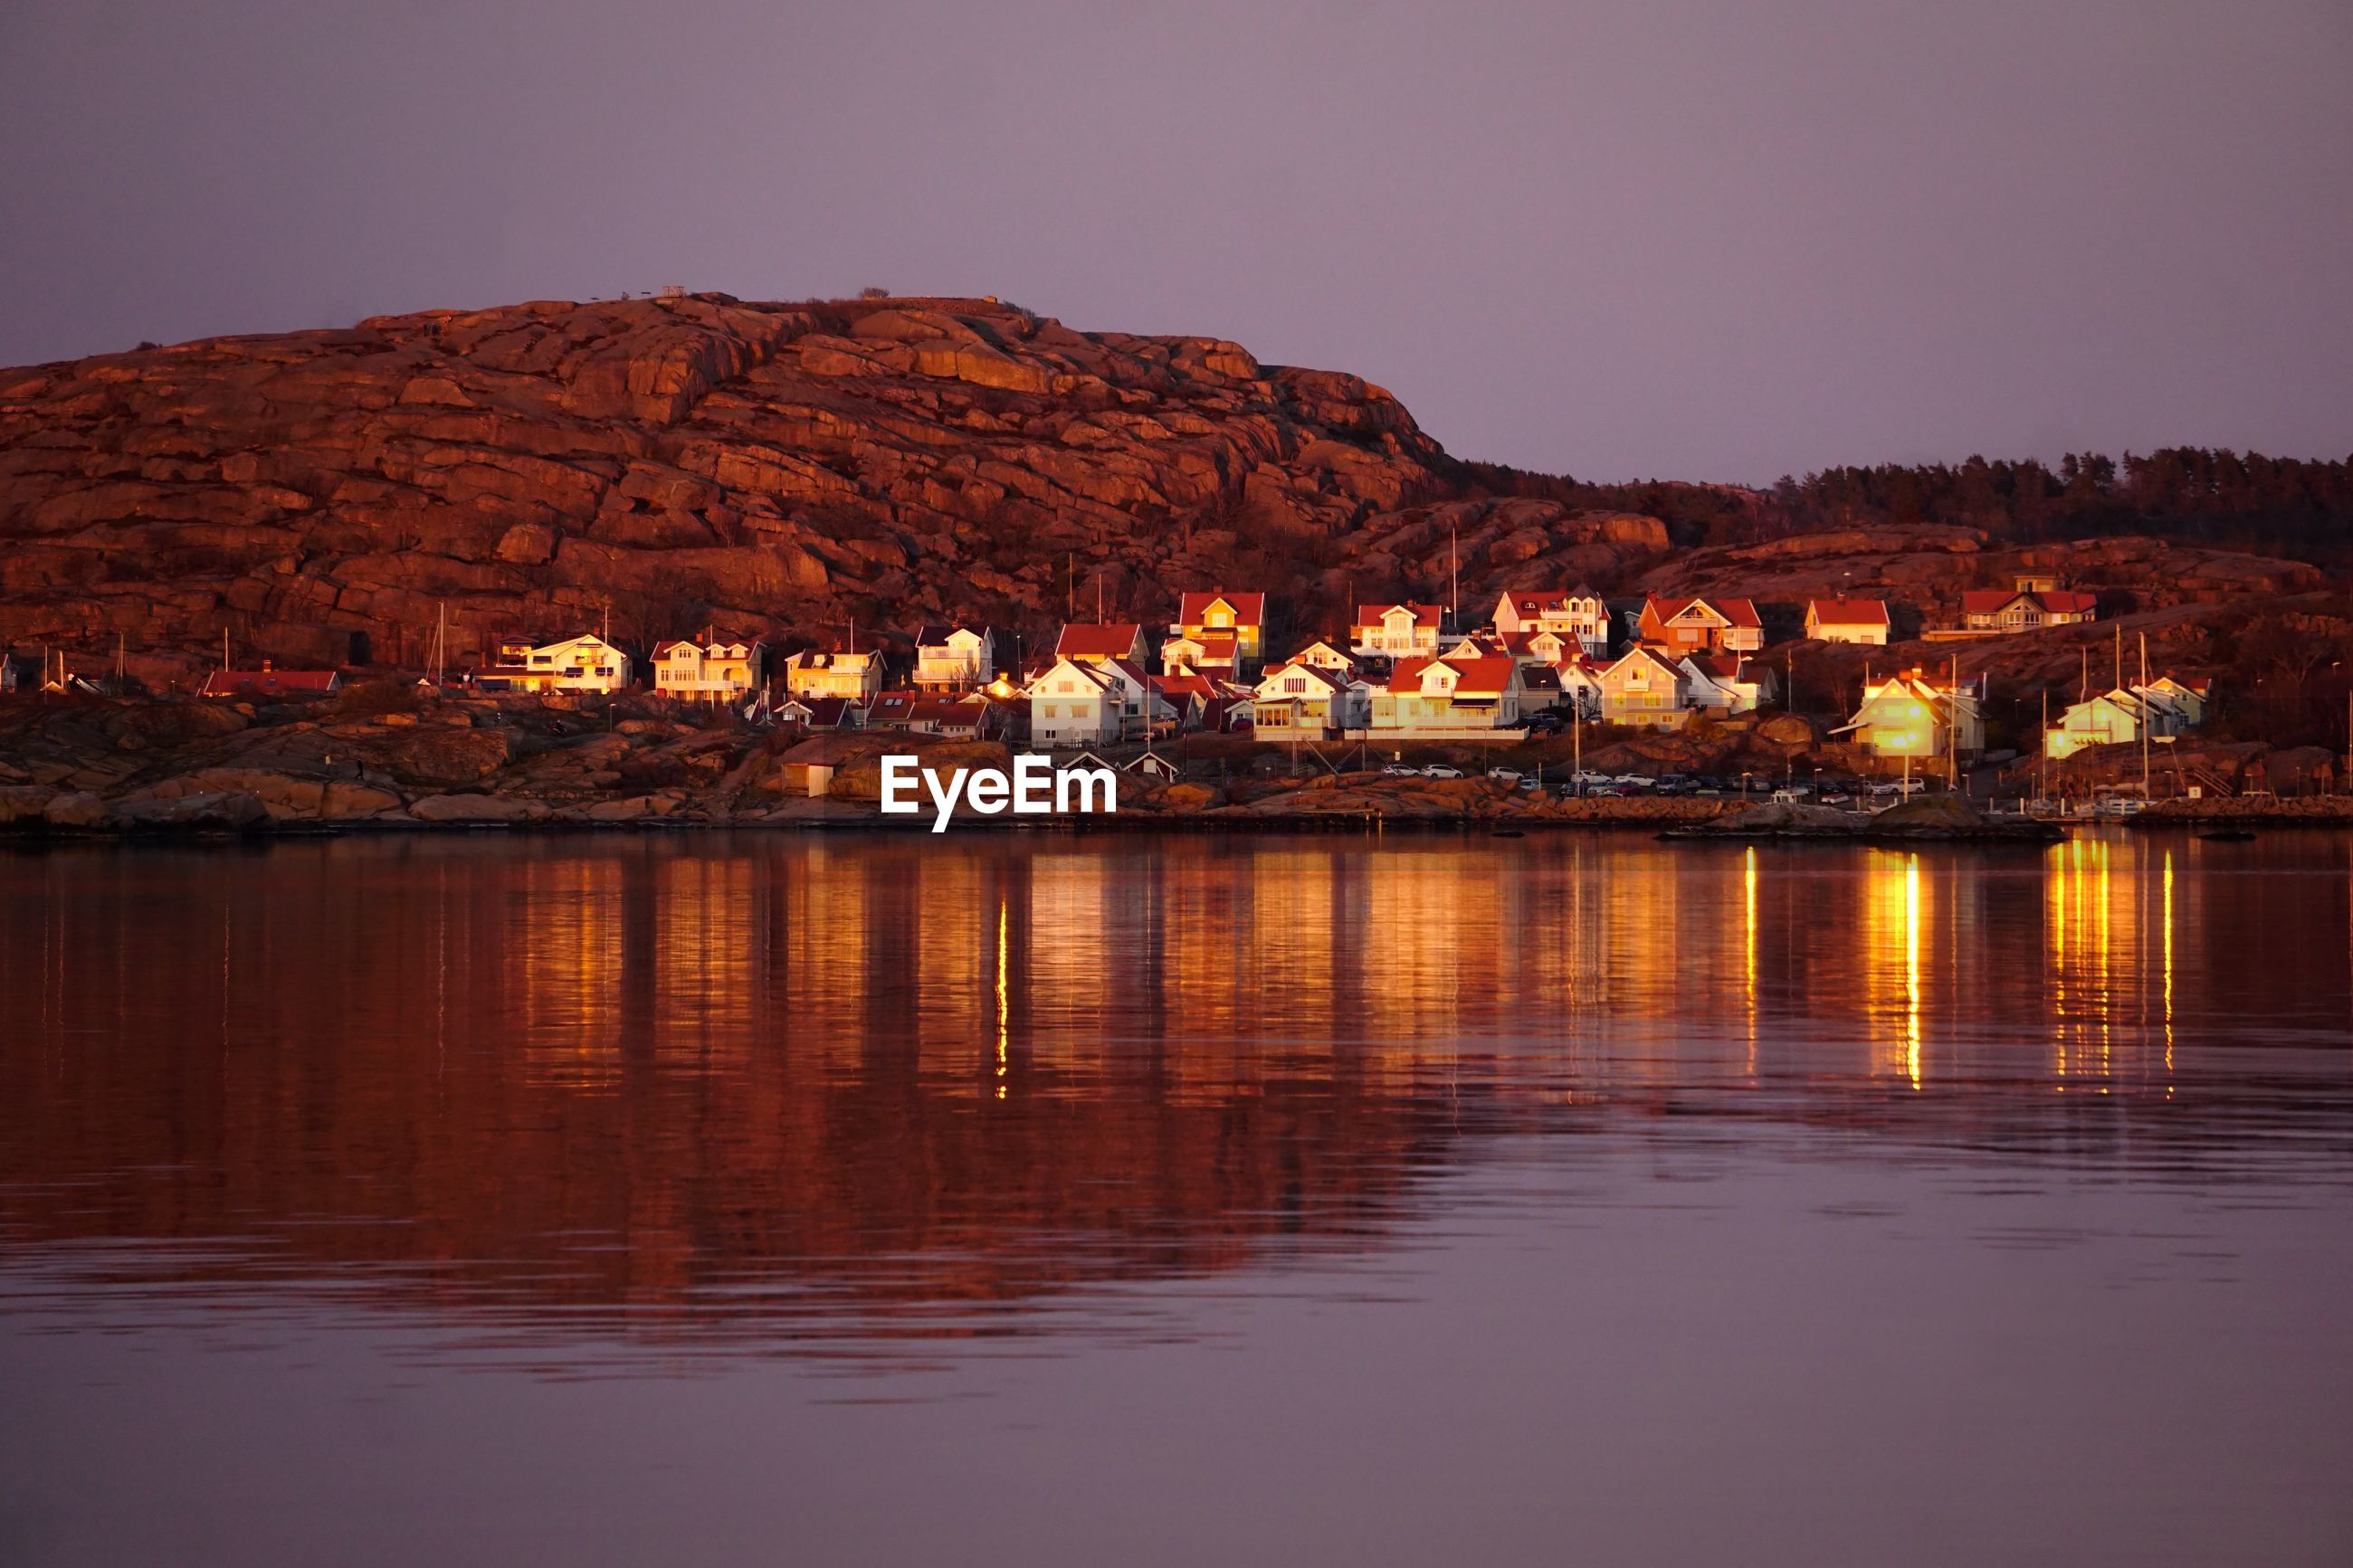 LAKE BY ILLUMINATED BUILDINGS AGAINST CLEAR SKY